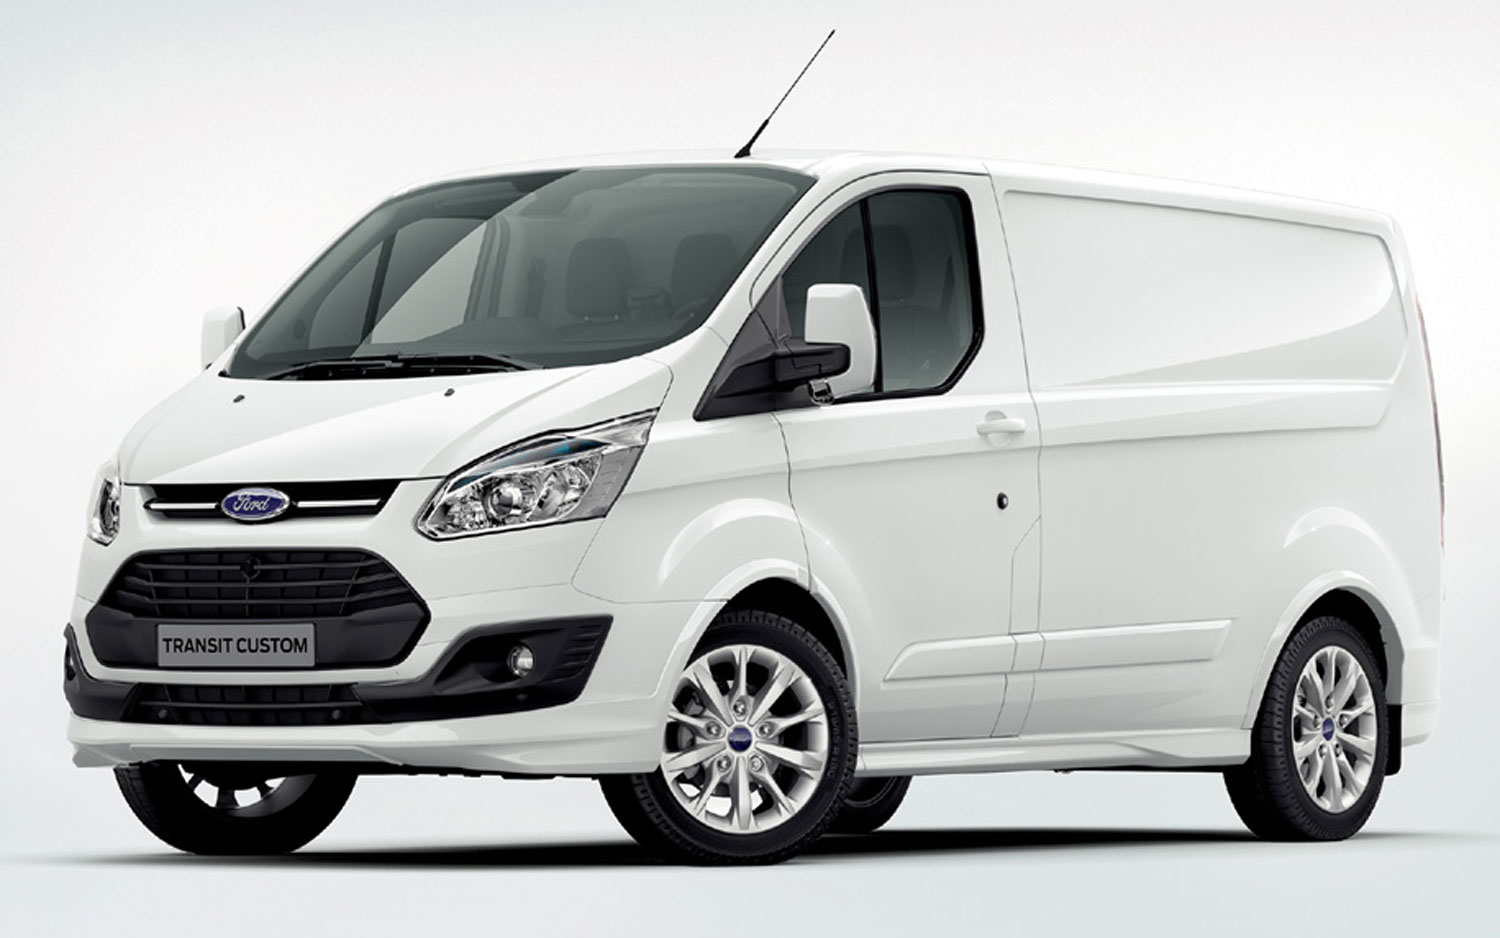 2015 Ford Transit Connect Cargo Van | Car HD Wallpaper